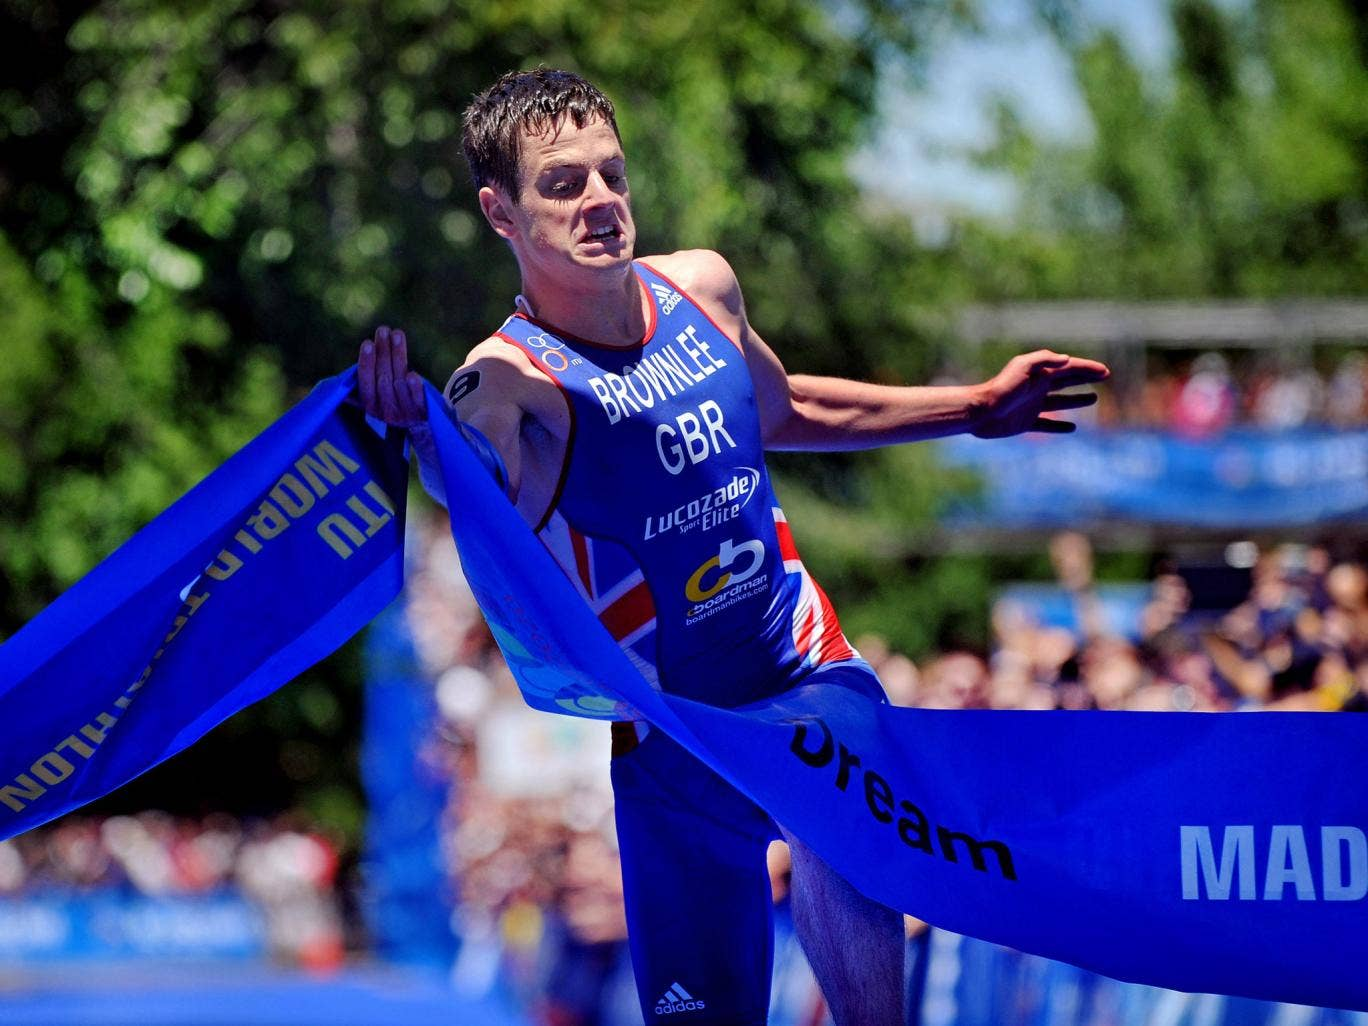 Jonathan Brownlee claimed a second consecutive win in this year's World Triathlon Series